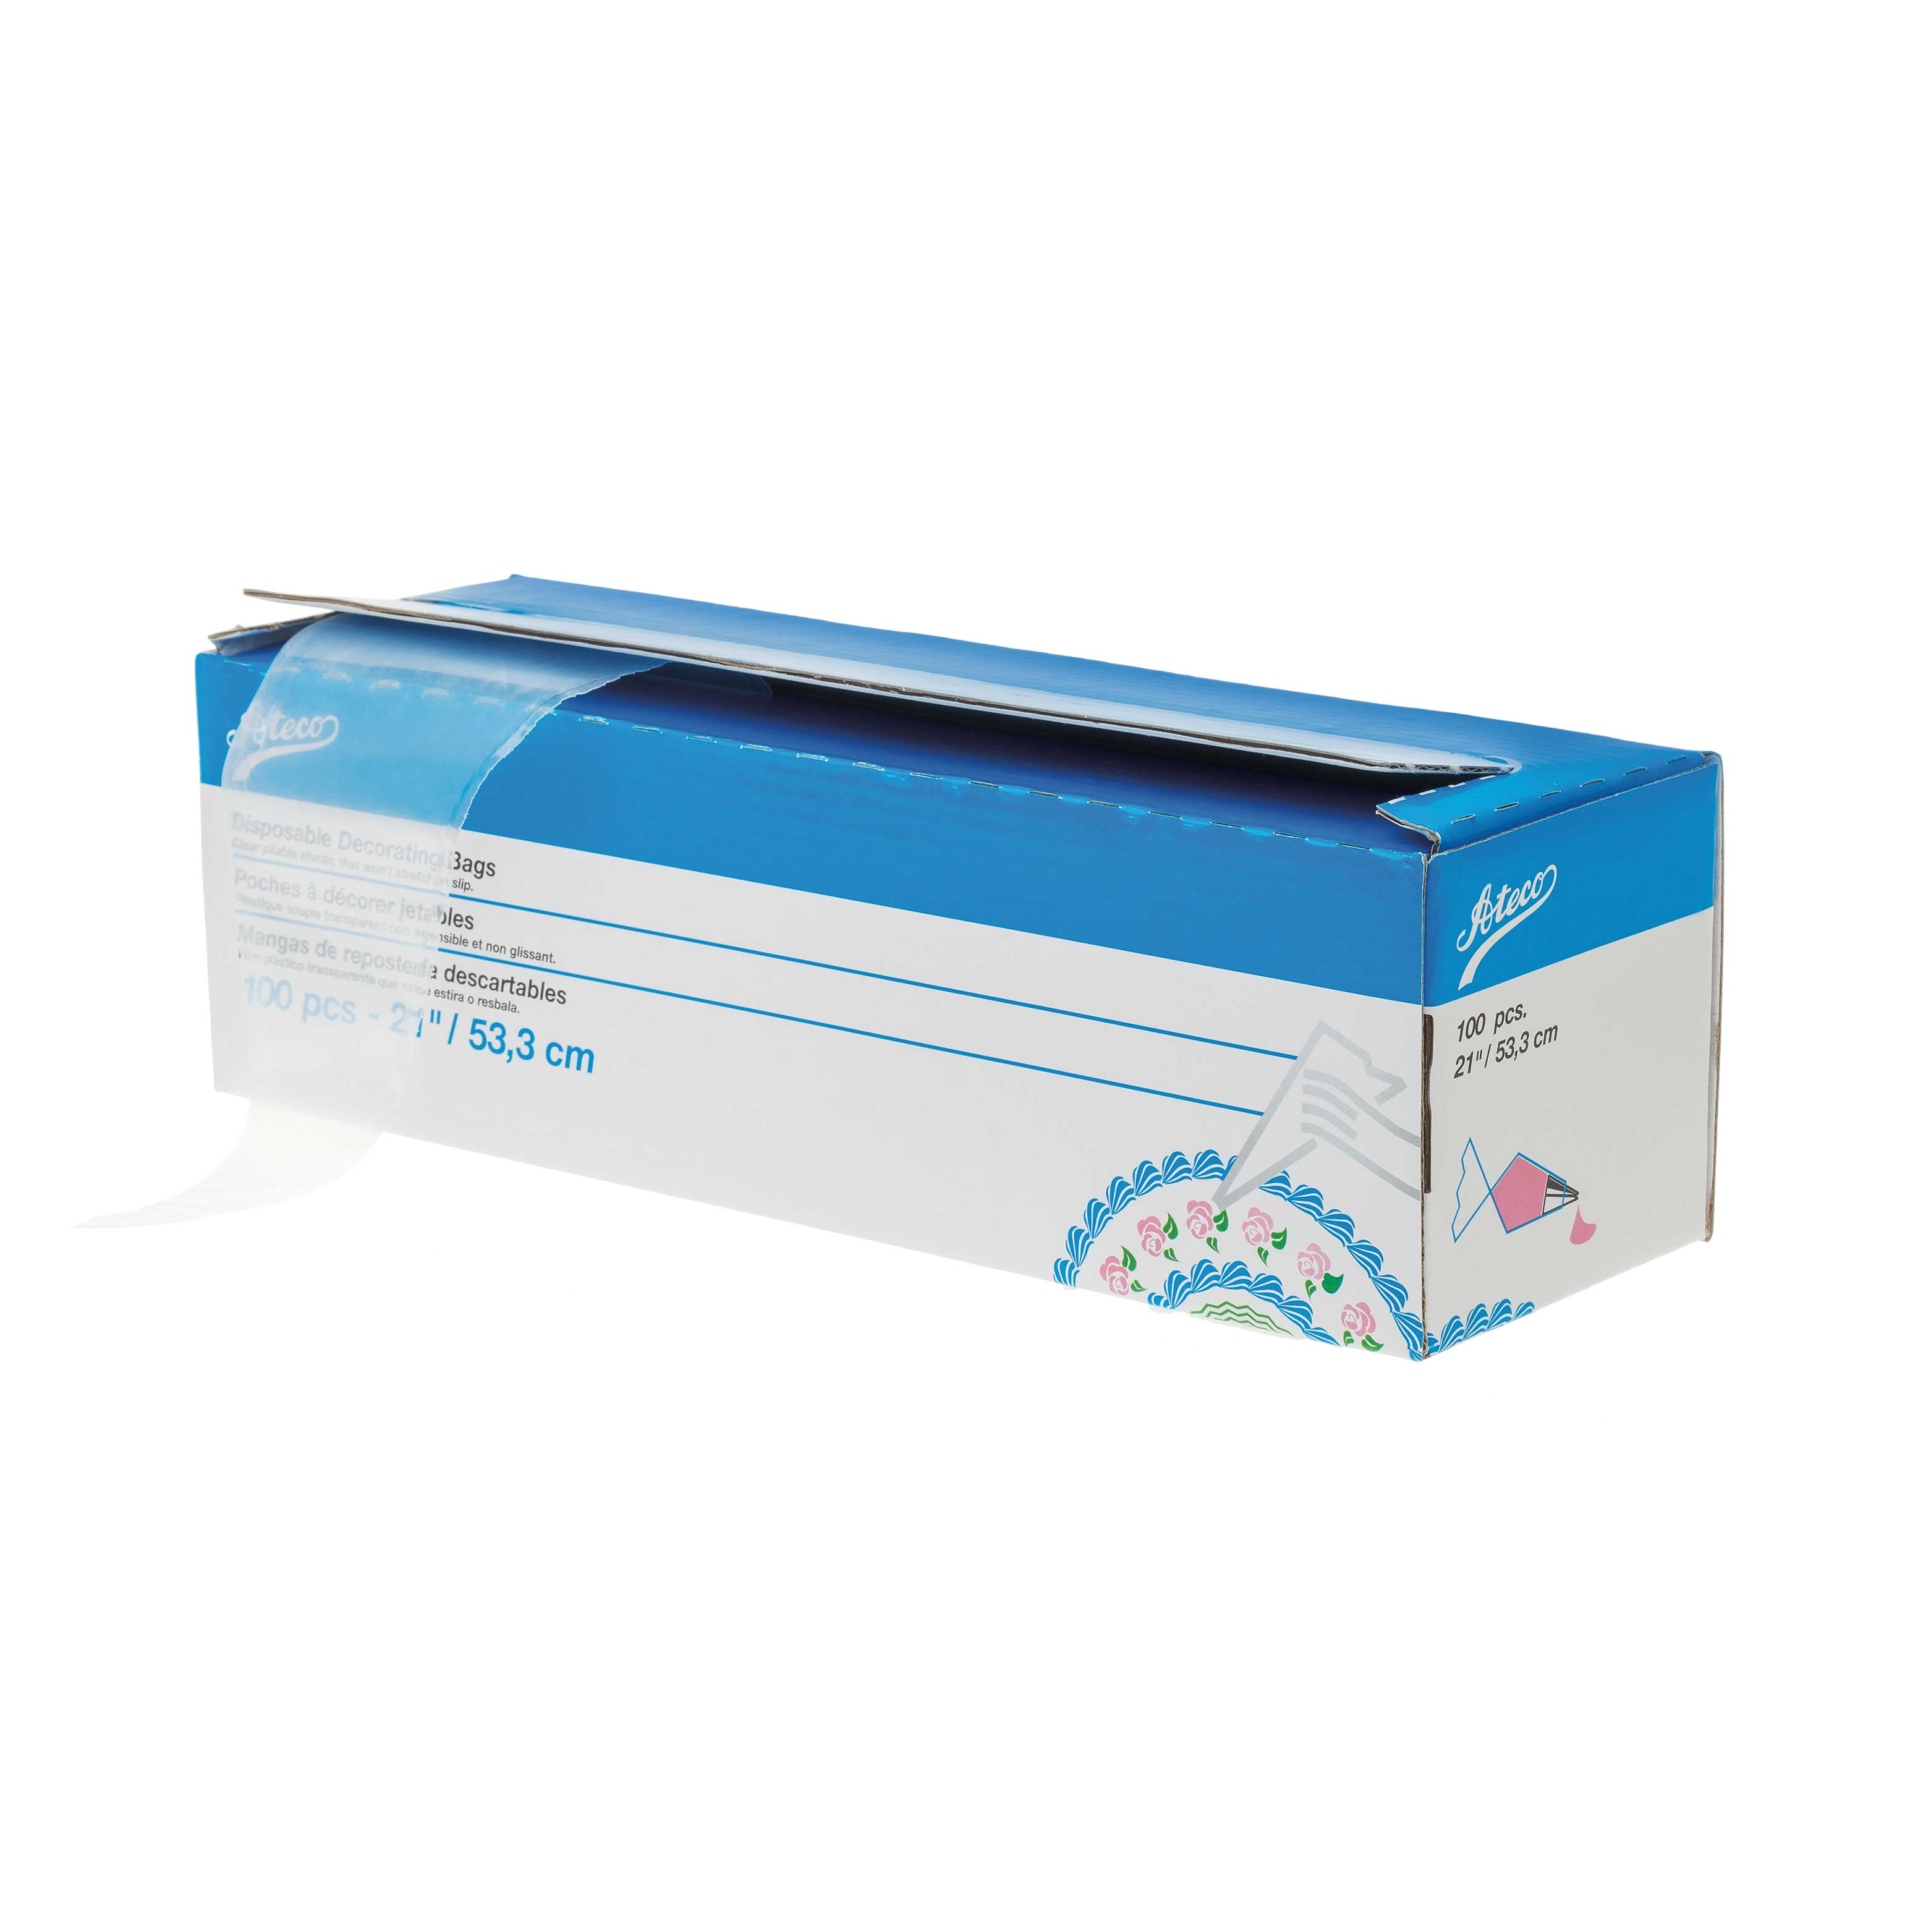 Royal Industries PST 4721 pastry bag